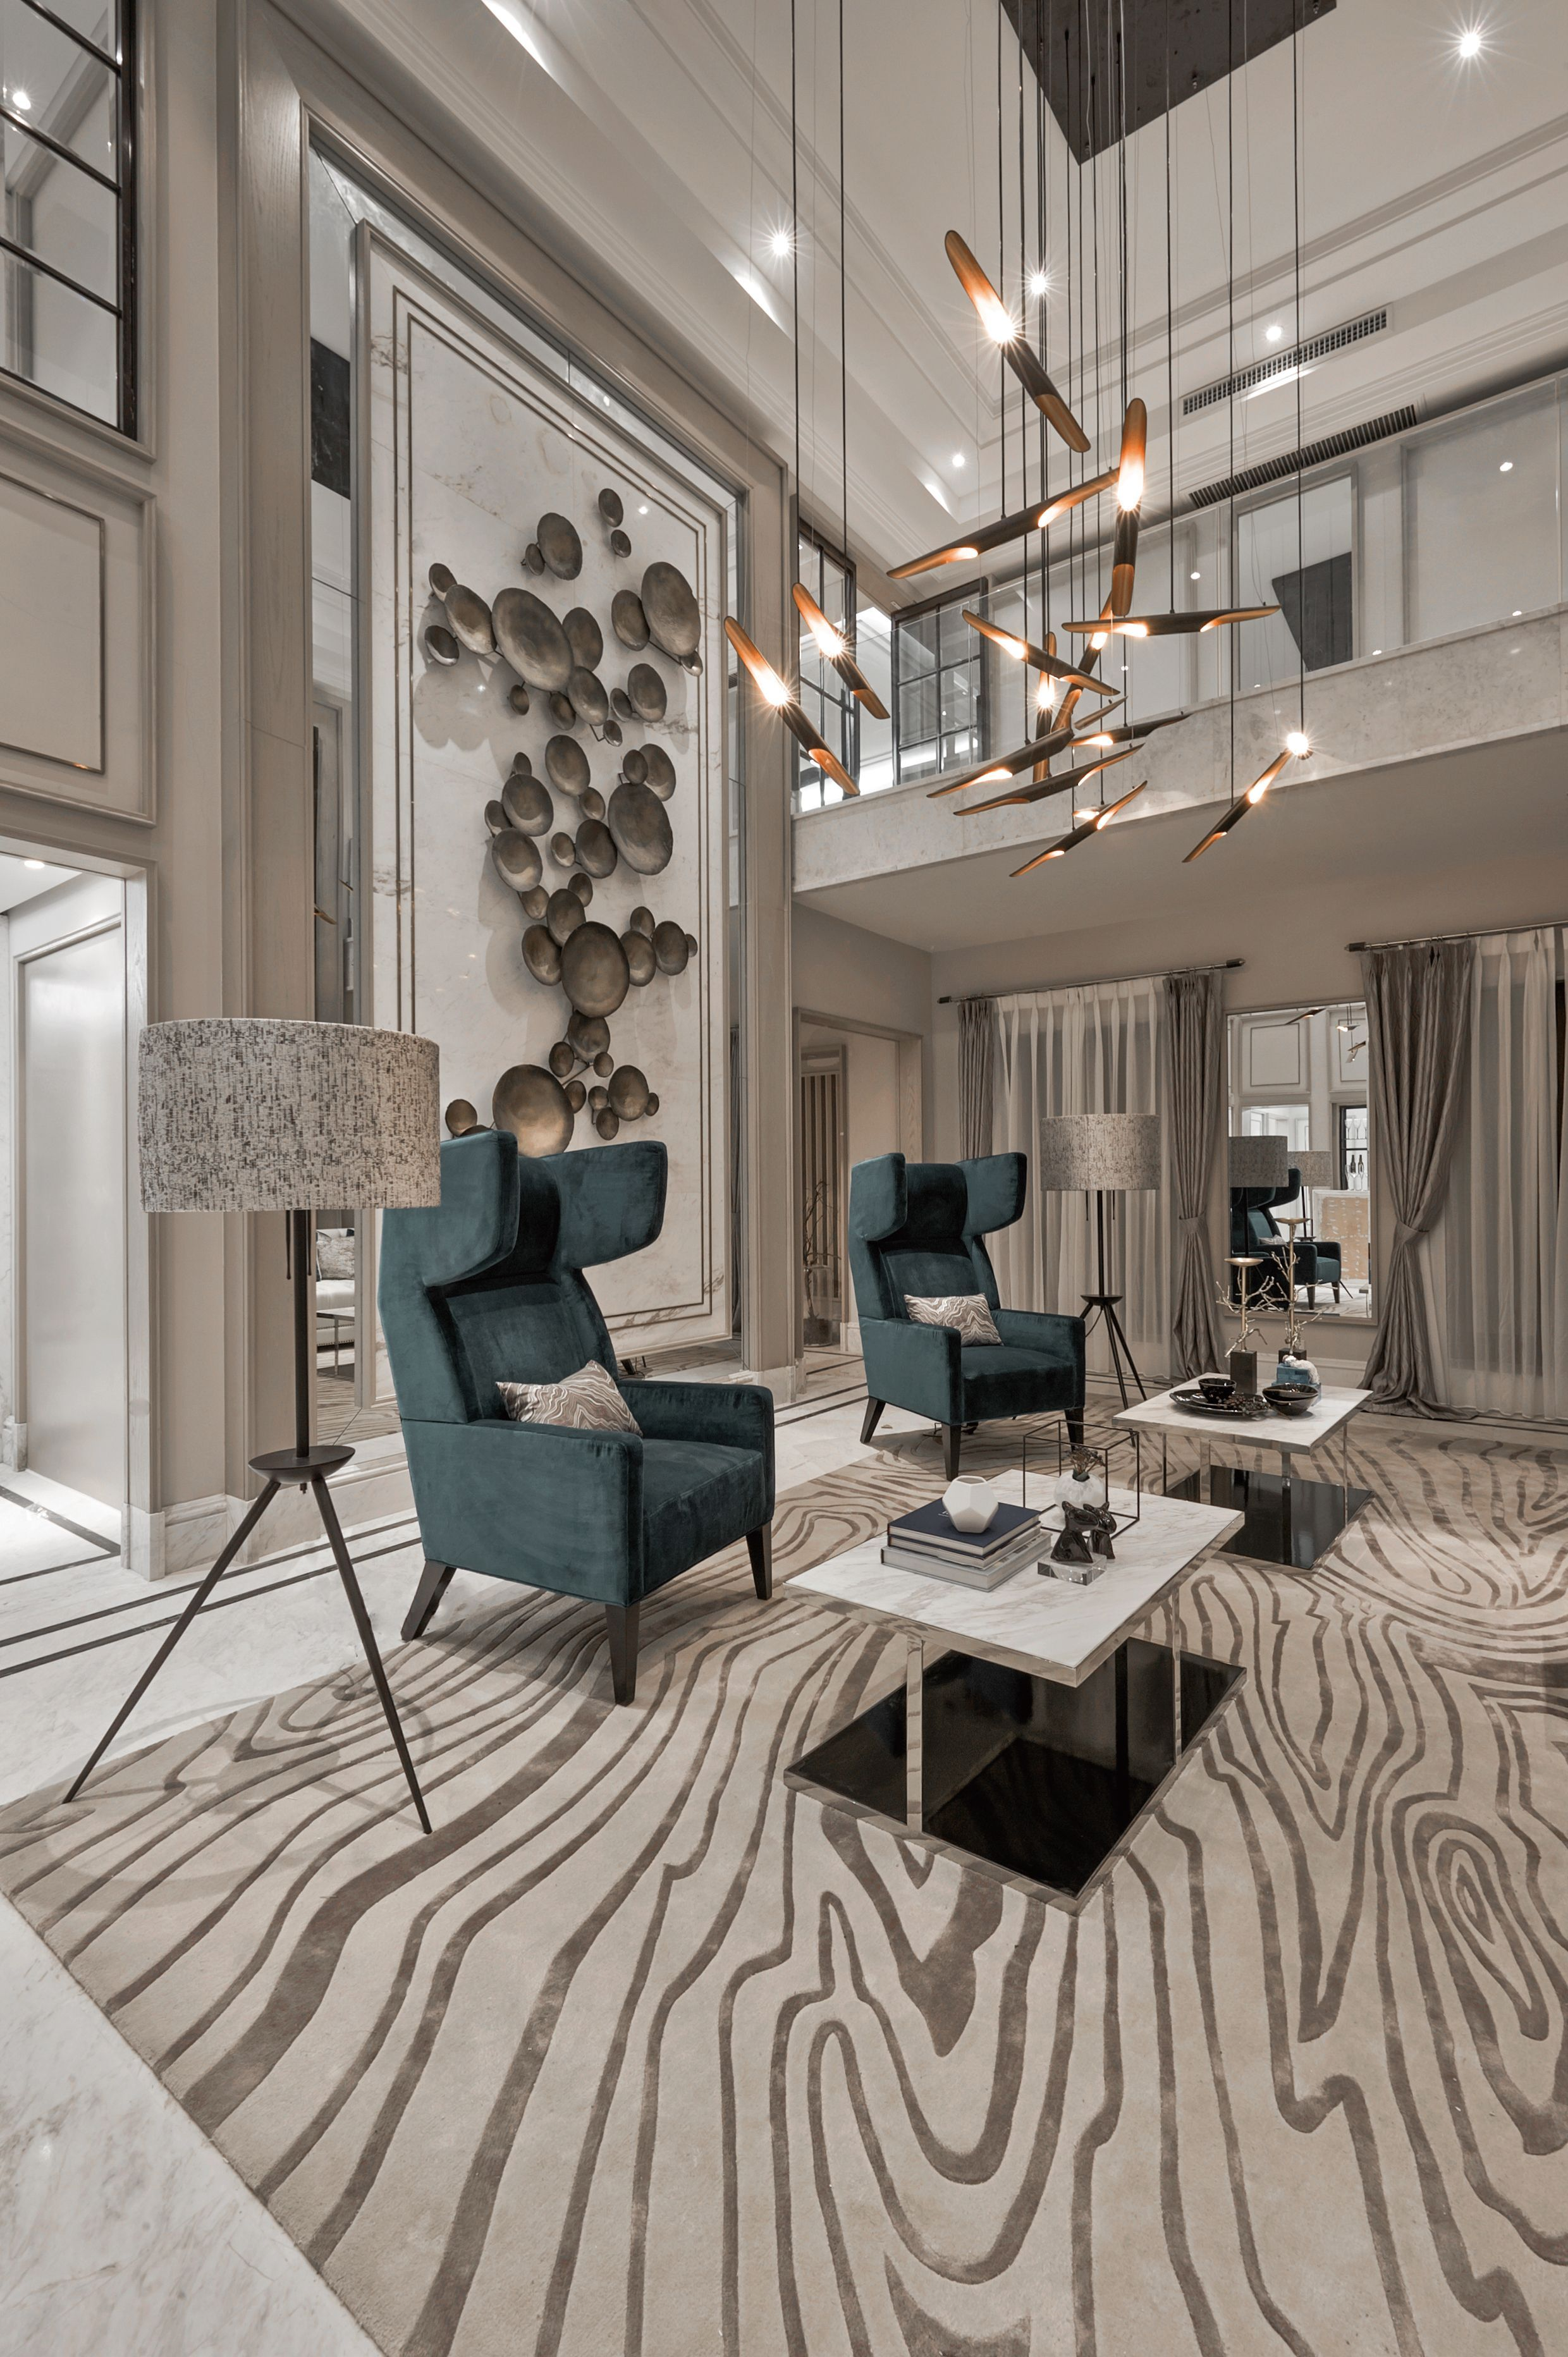 Luxurious Living Room With Delightfull Lighting Designs In Almaty